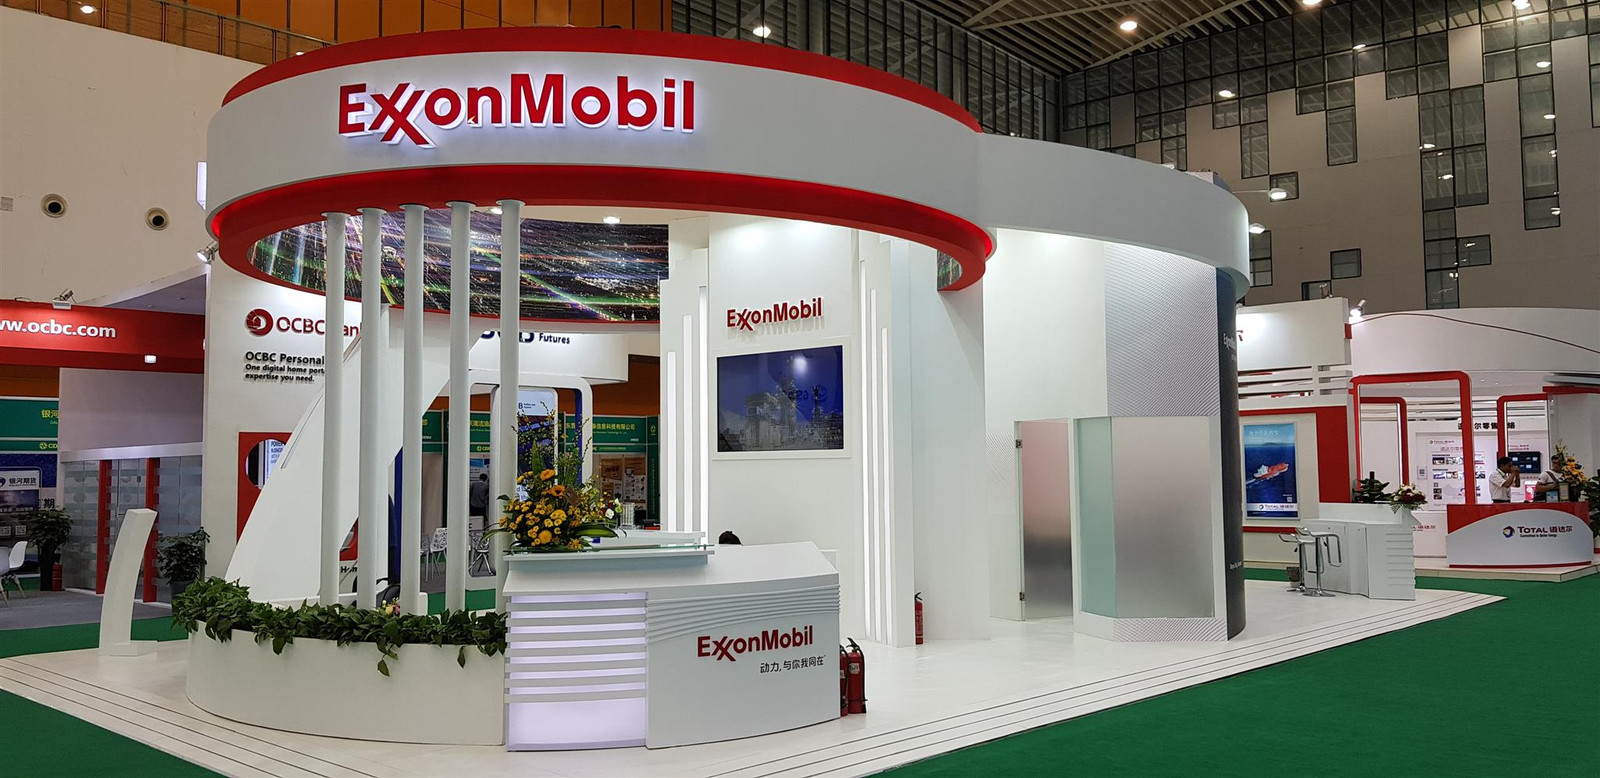 Exhibition Stand Contractors In Doha Qatar : Best exhibition stand design companies in qatar procyon creations